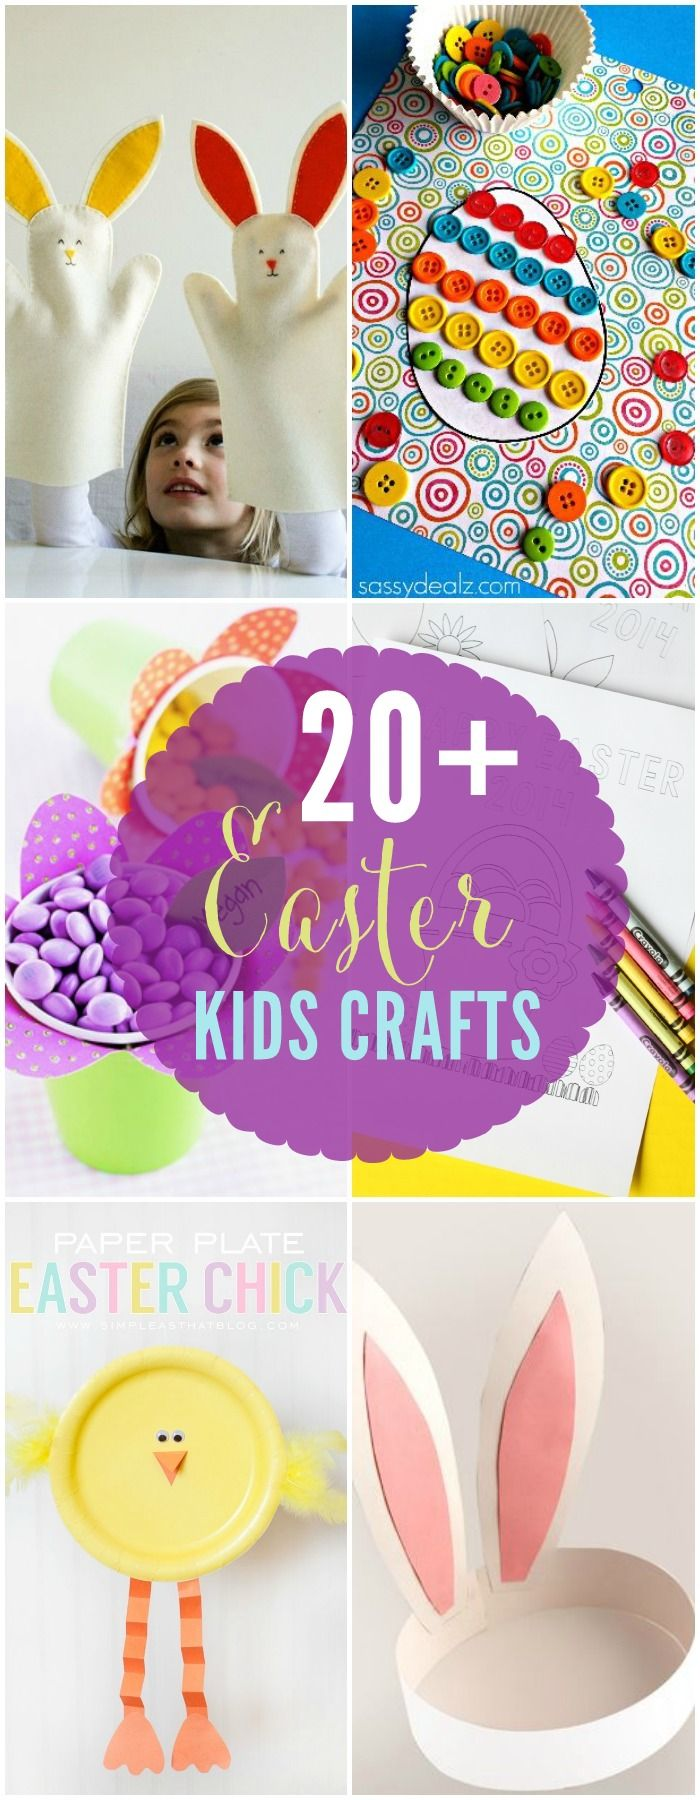 20+ Easter Kids Crafts - great collection on { lilluna.com }